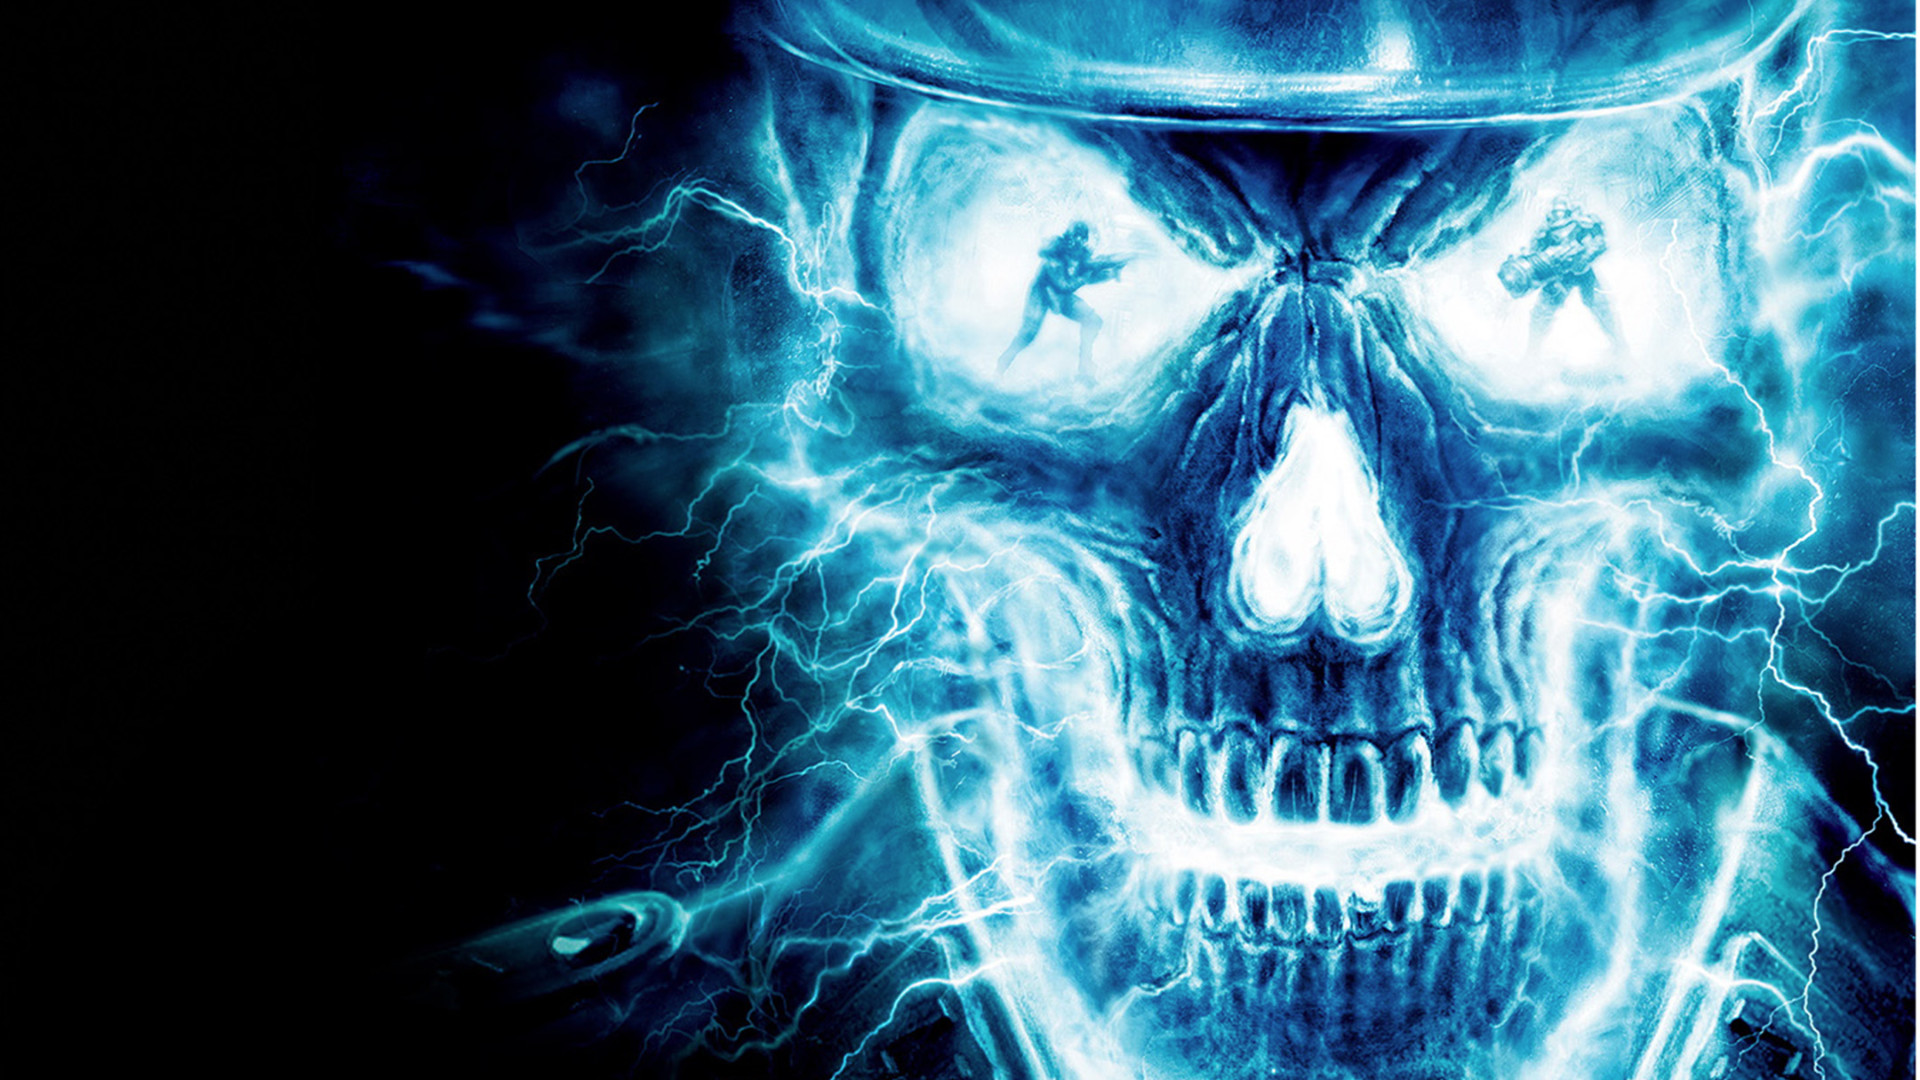 1920x1080 Blue Flaming Skull Nexus [1920 x 1080] Need #iPhone #6S #Plus #Wallpaper/  #Background for #IPhone6SPlus? Follow iPhone 6S Plus 3Wallpapers/ #Backgr…